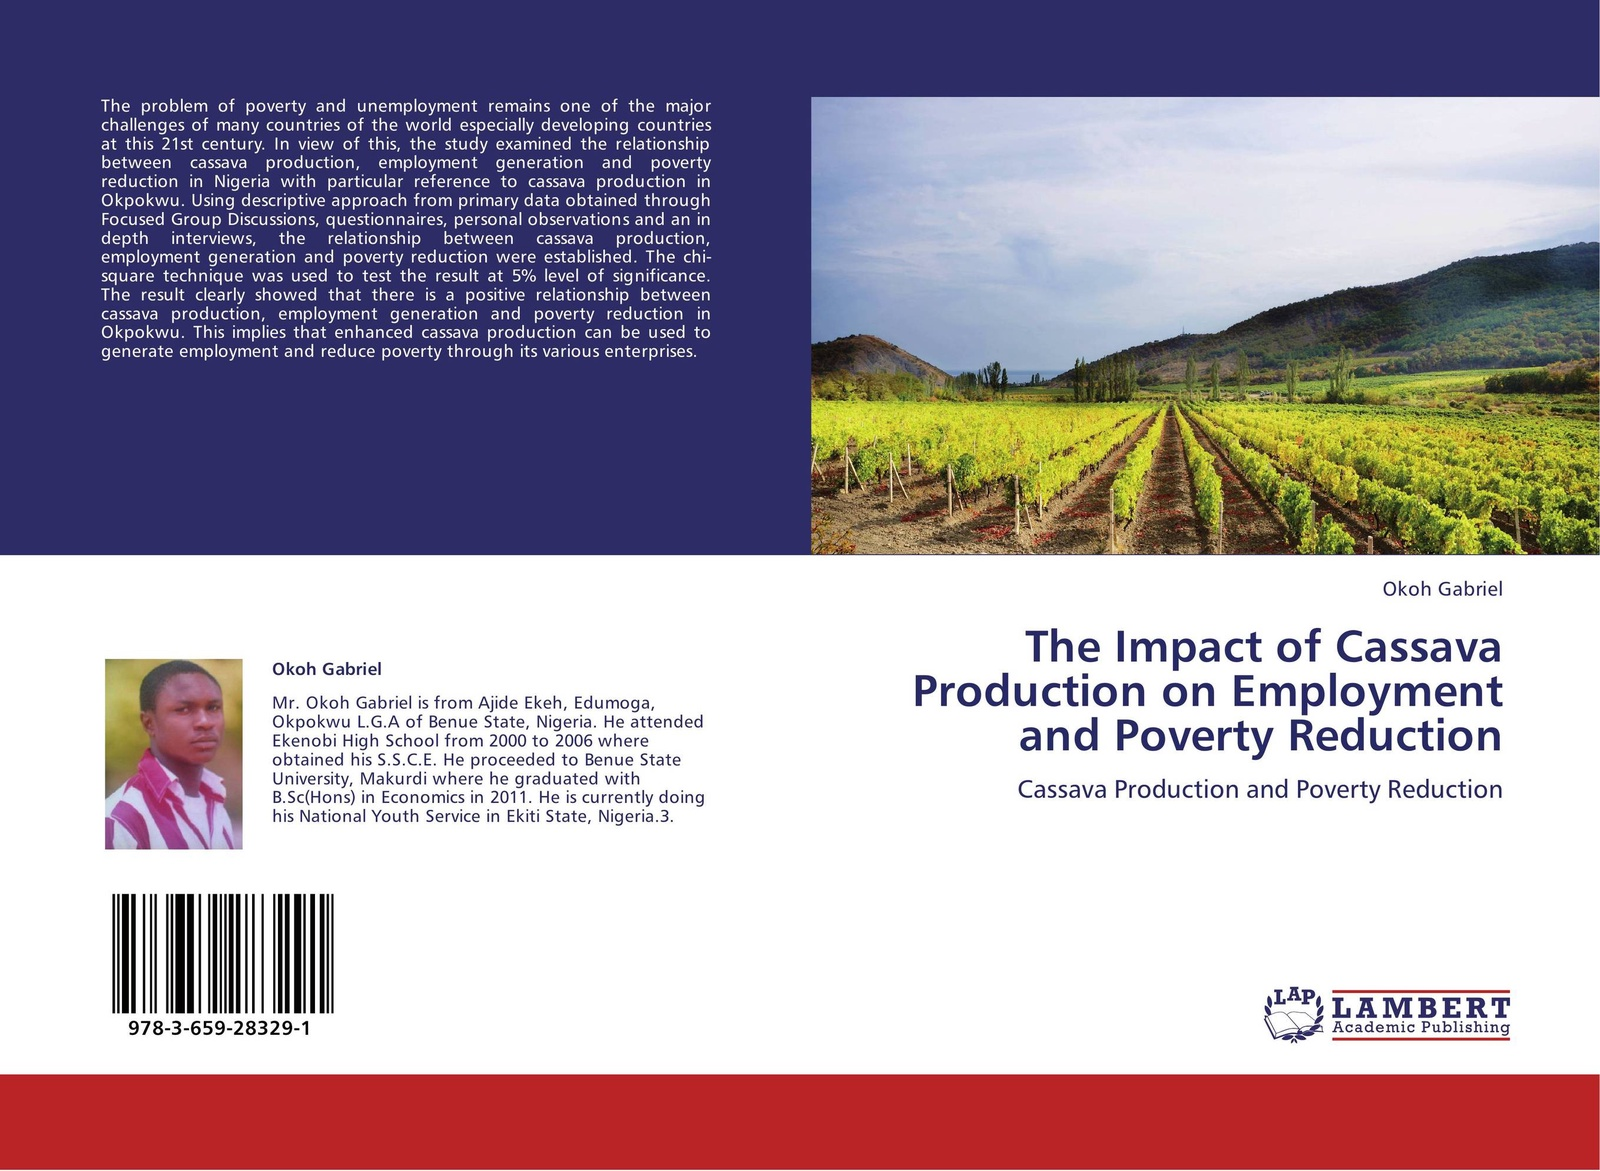 Okoh Gabriel The Impact of Cassava Production on Employment and Poverty Reduction mary goretty oyella basic education poverty reduction and the realisation of equality in northern uganda